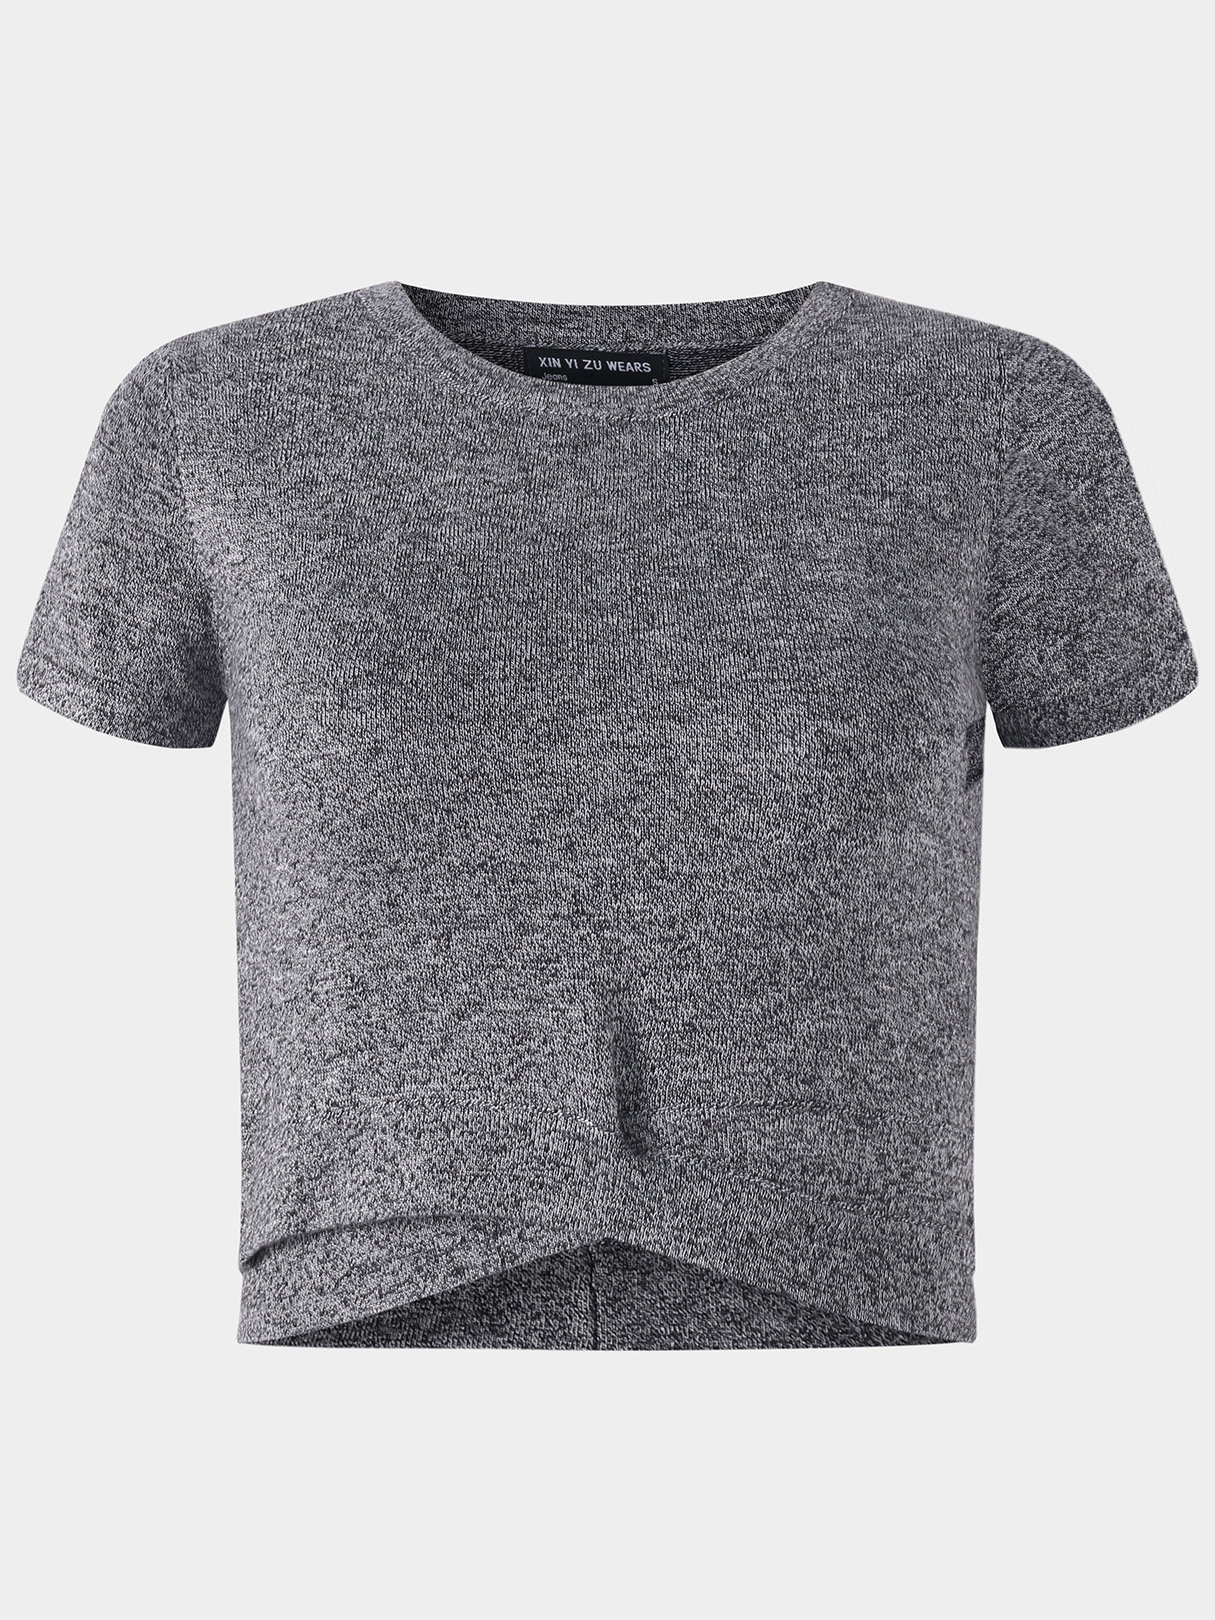 Active Round Neck Cut Out T-shrits in Grey active round neck cut out t shirts in white